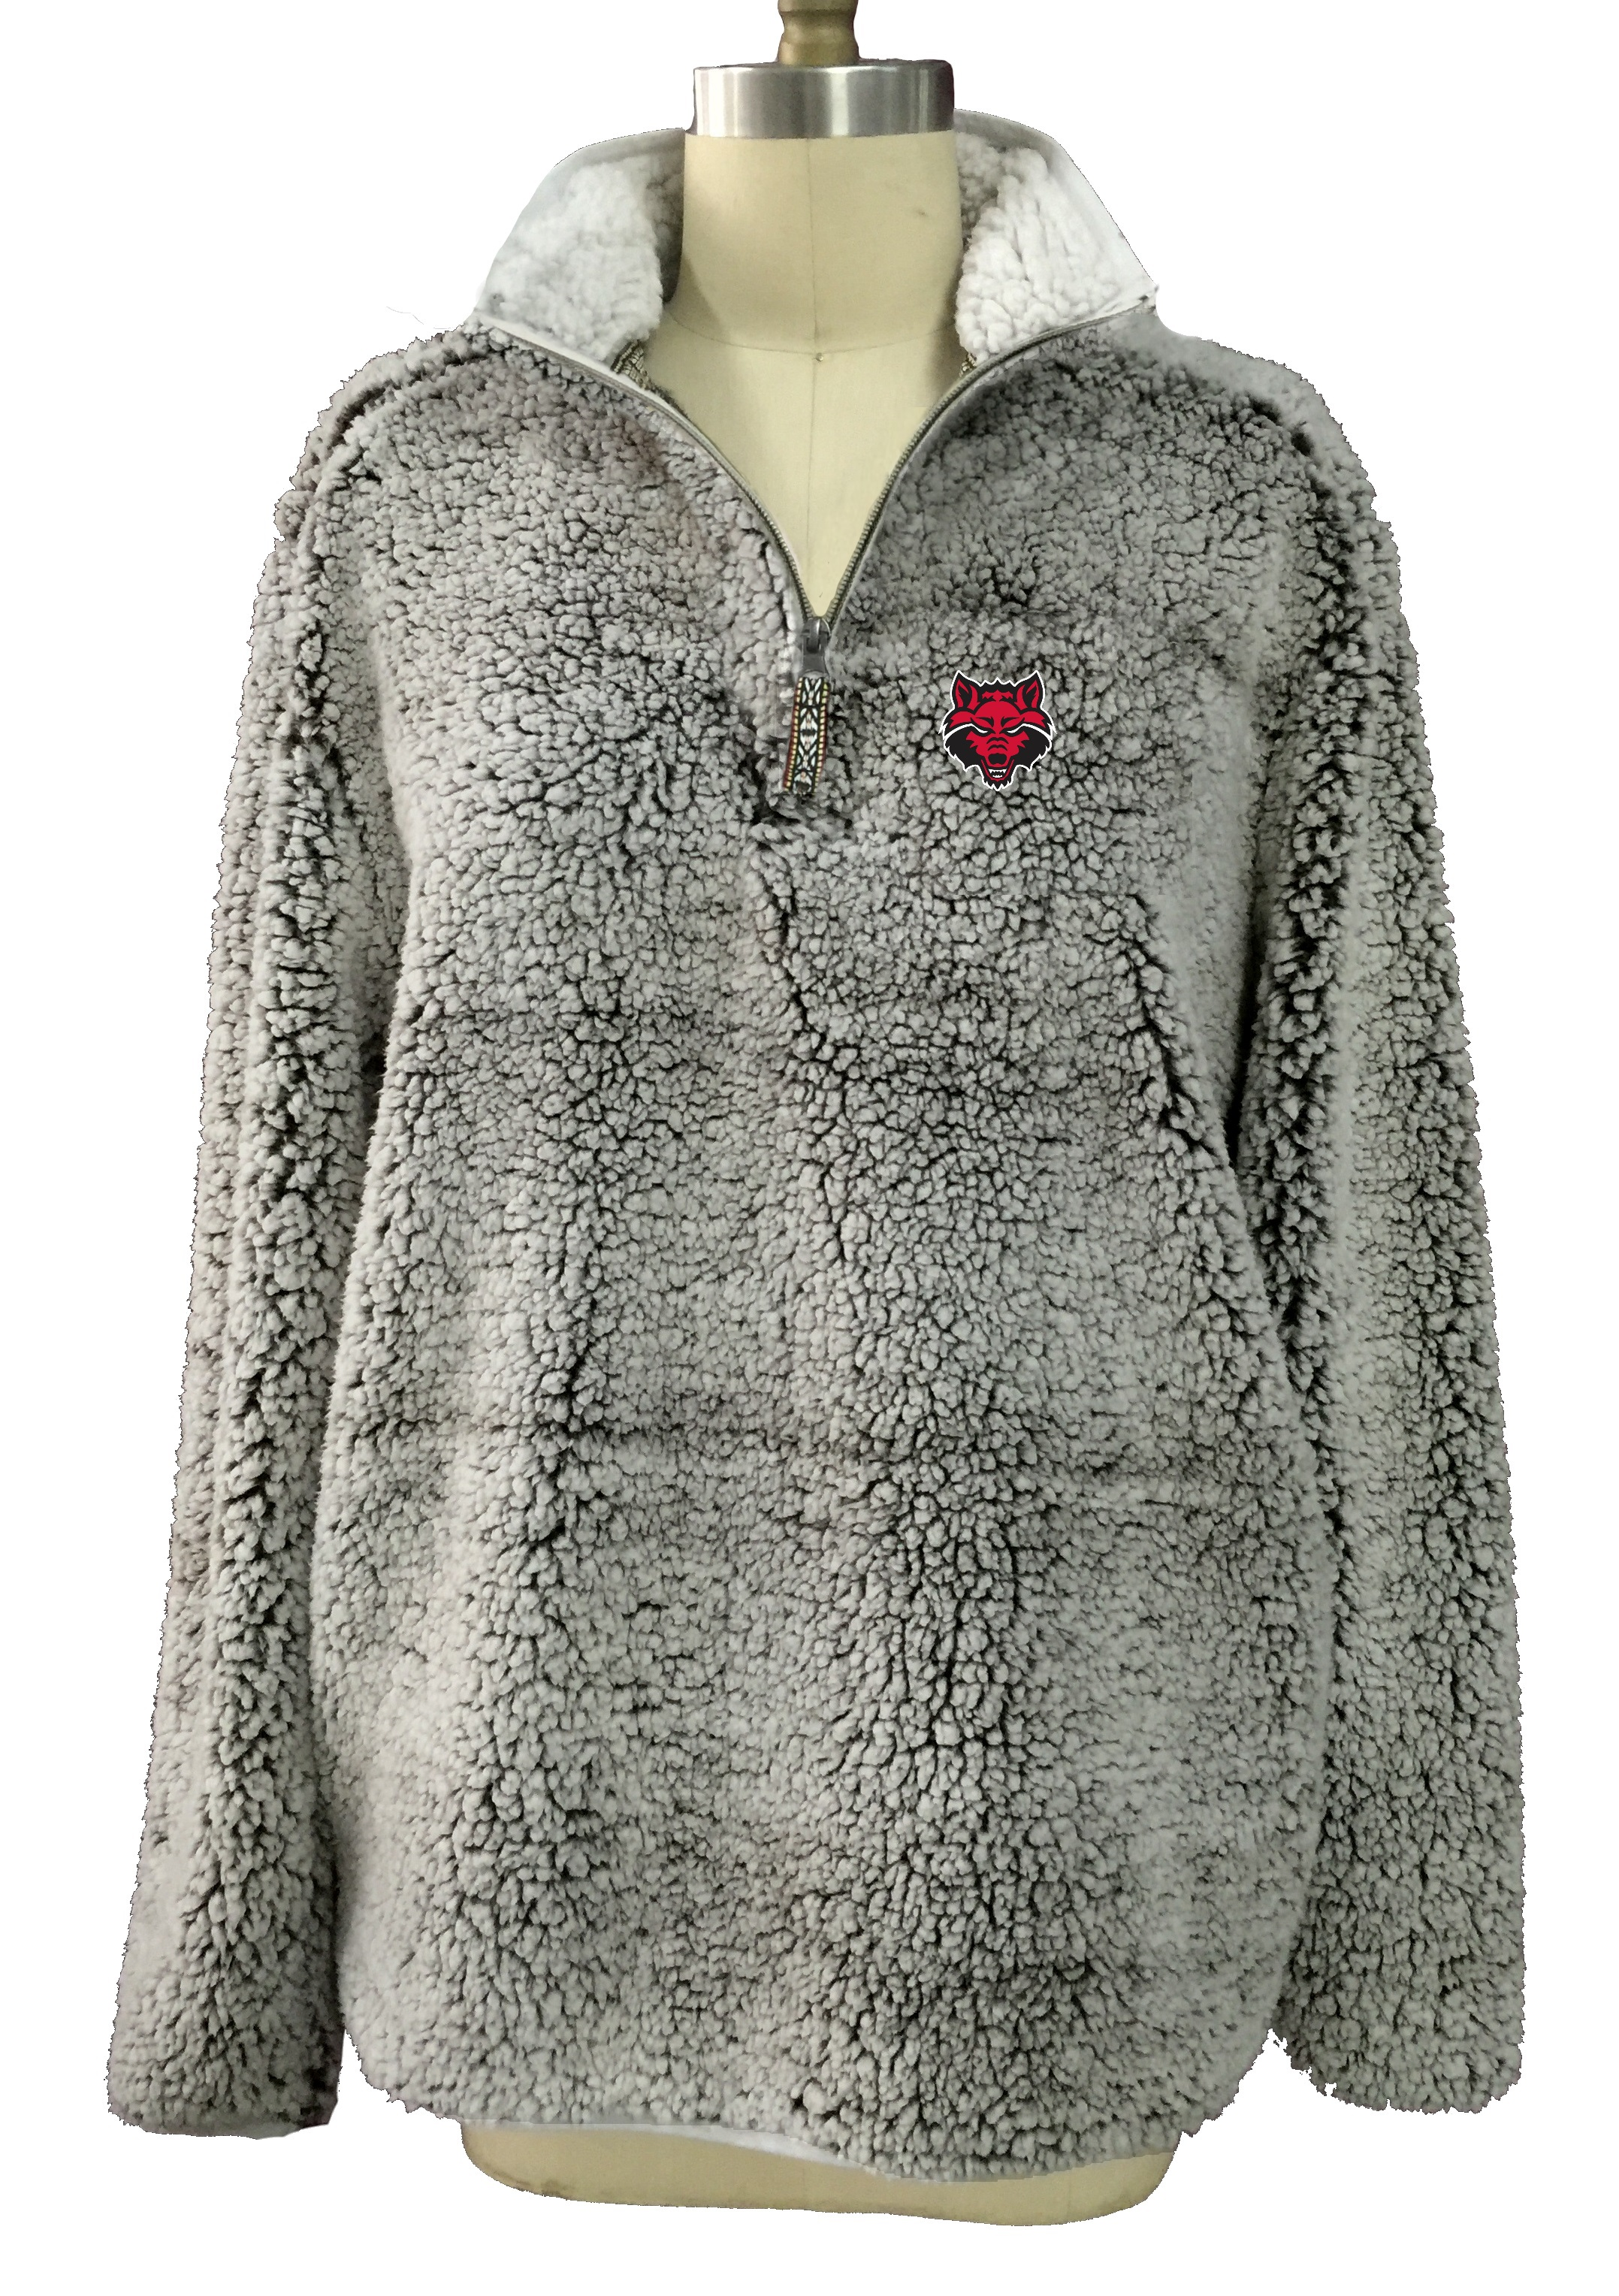 Arkansas State Heathered Sherpa 1/4 Zip Pull Over